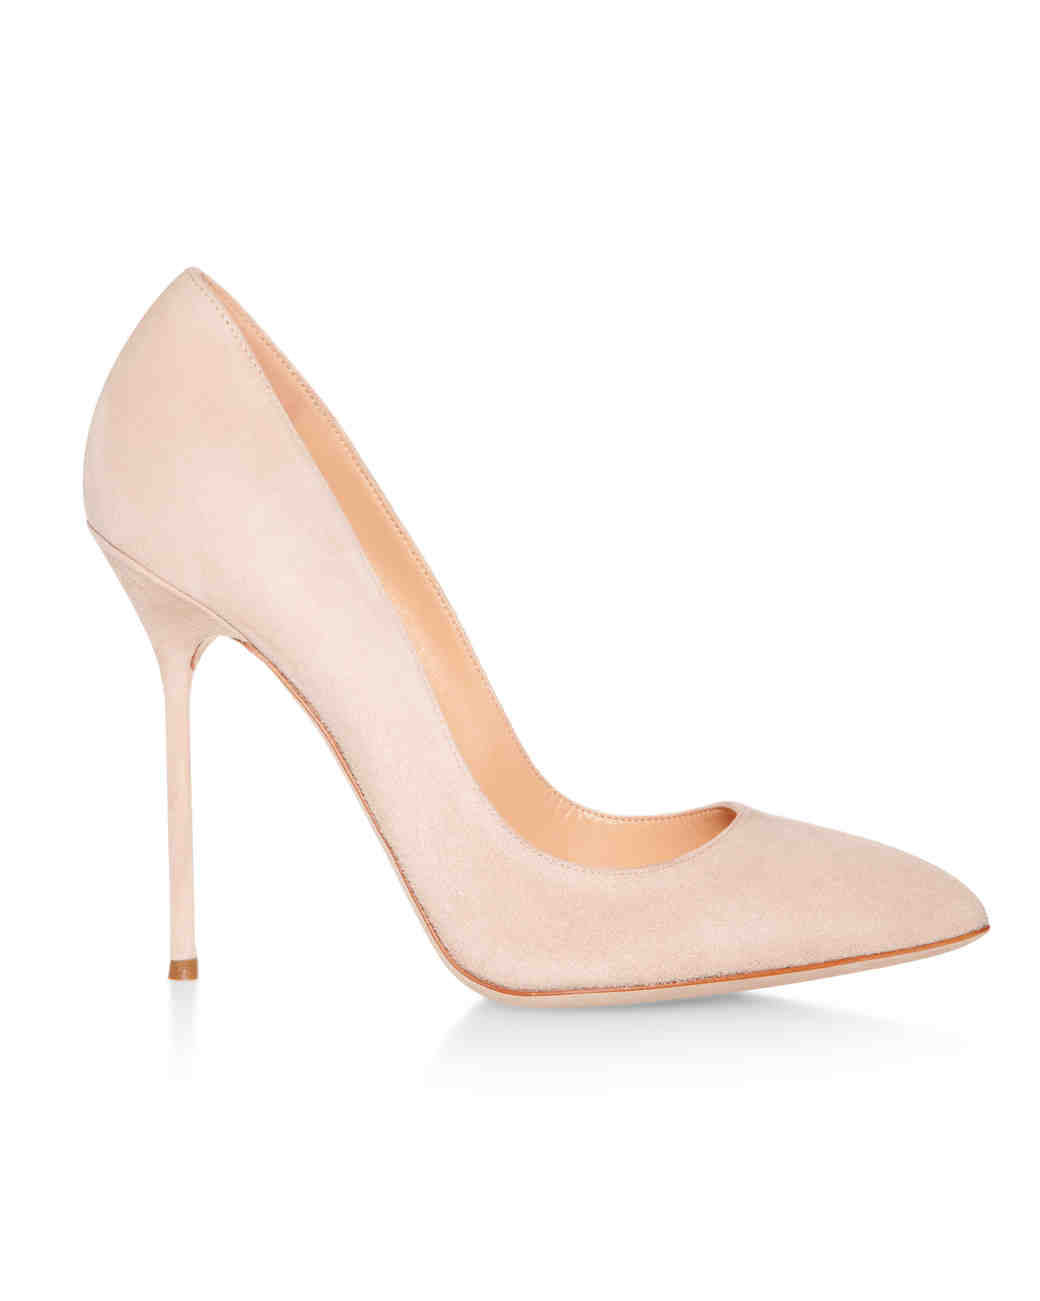 36 Best Shoes For A Bride To Wear To A Fall Wedding